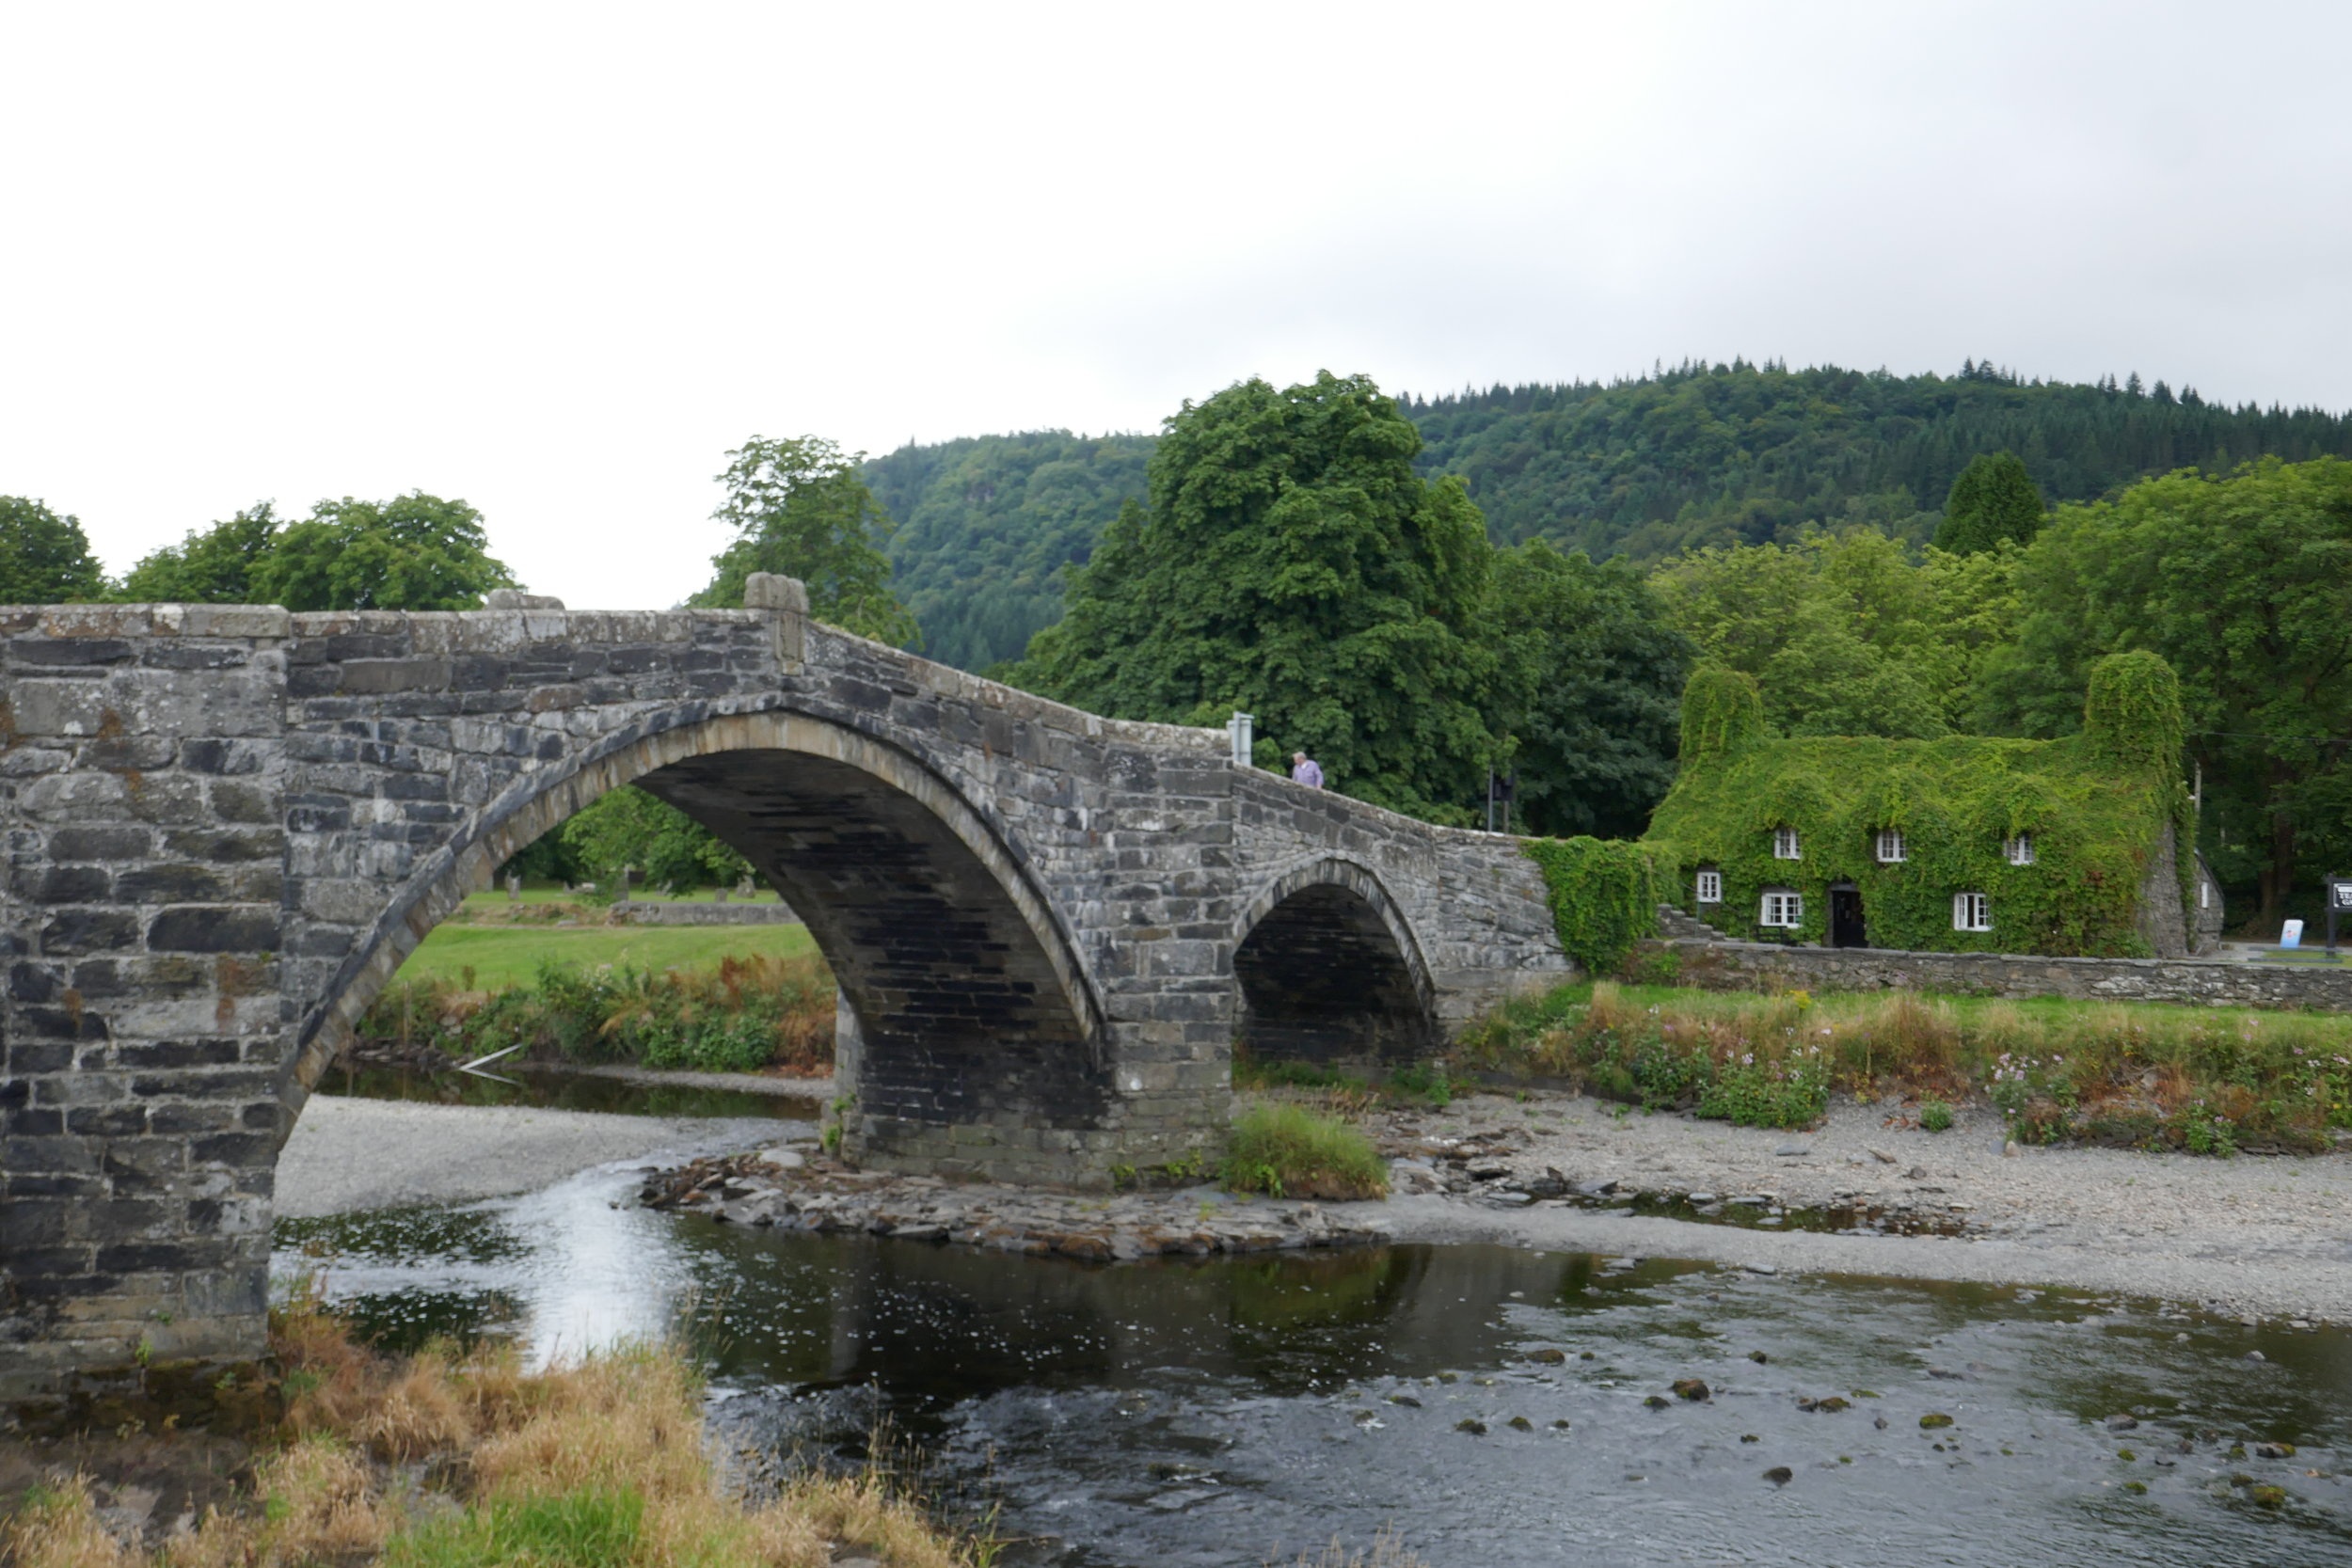 Things to see and do in Llanrwst, North Wales